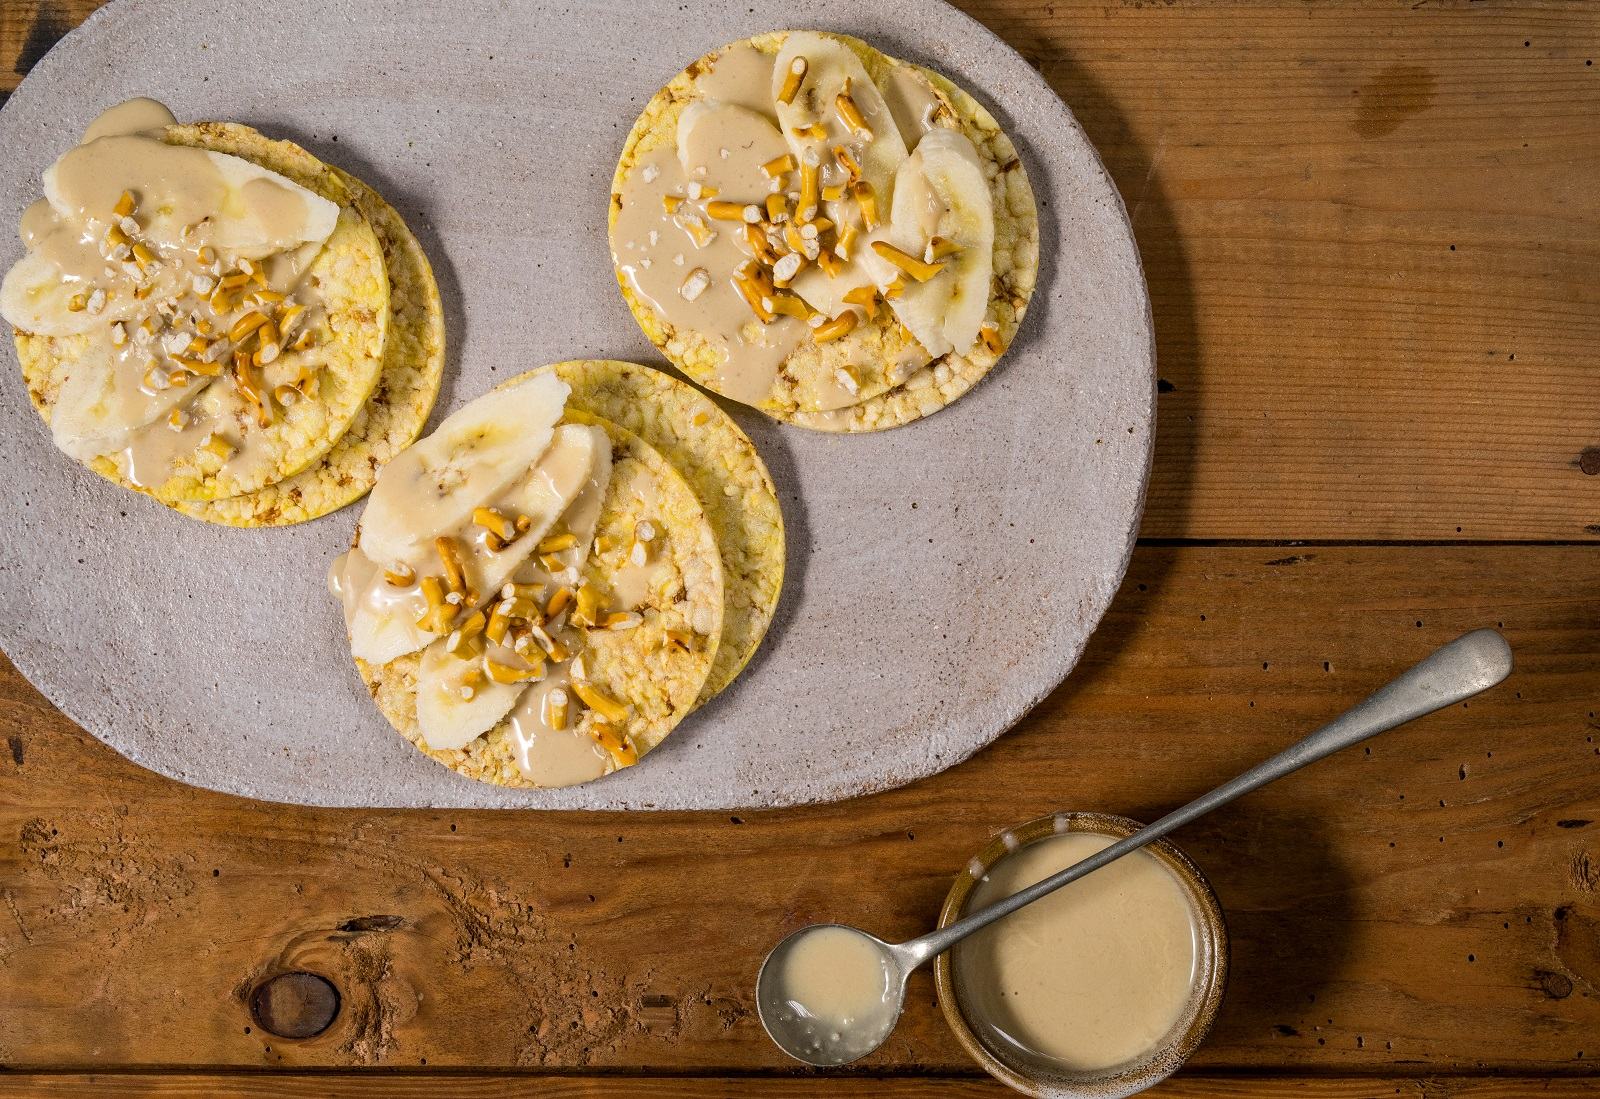 Sweet & Salty - banana, tahini & prezels on CORN THINS slices